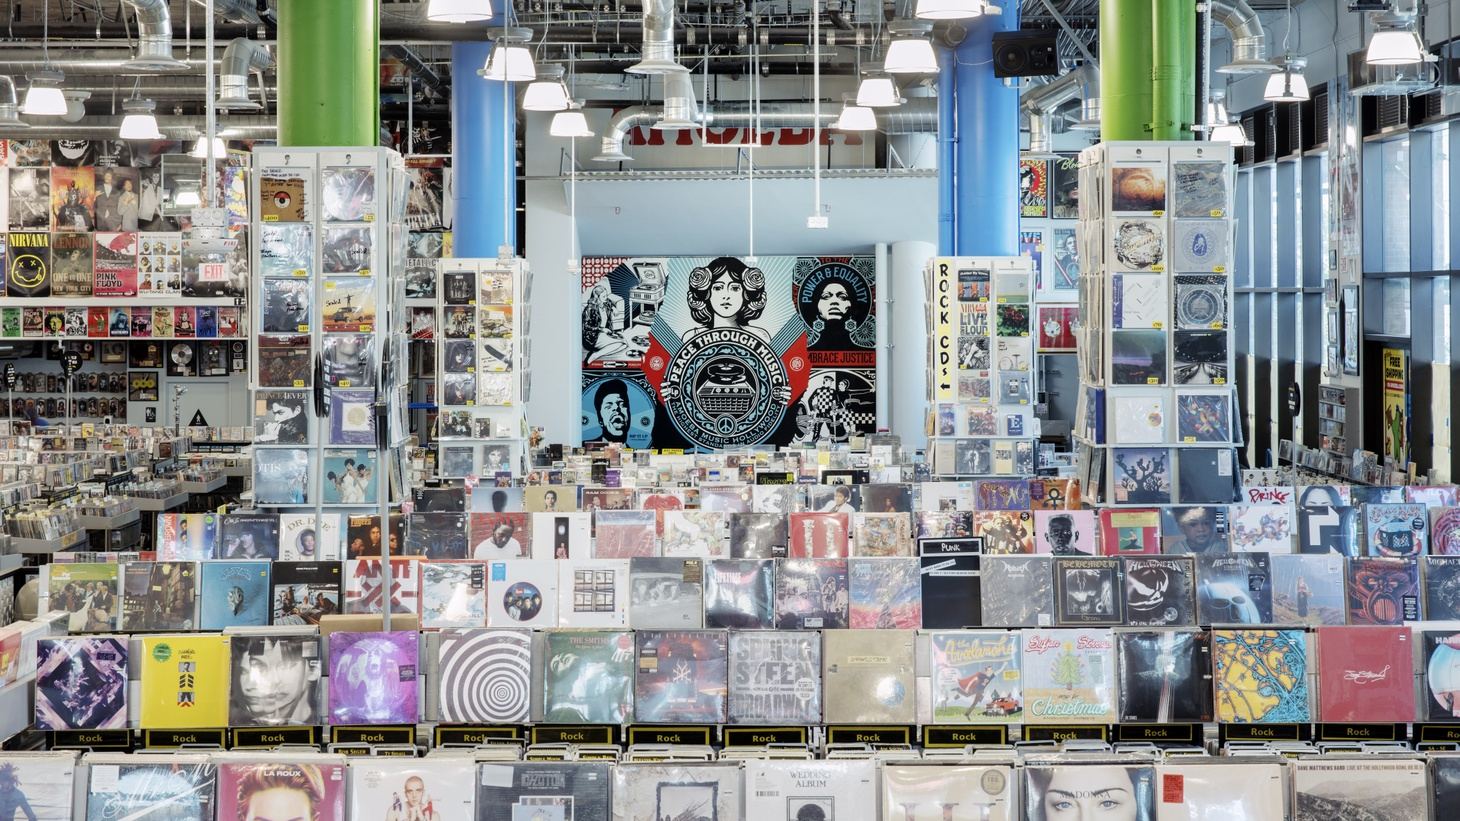 The new Amoeba Hollywood location features an in-store performance stage with a mural by Shepard Fairey.